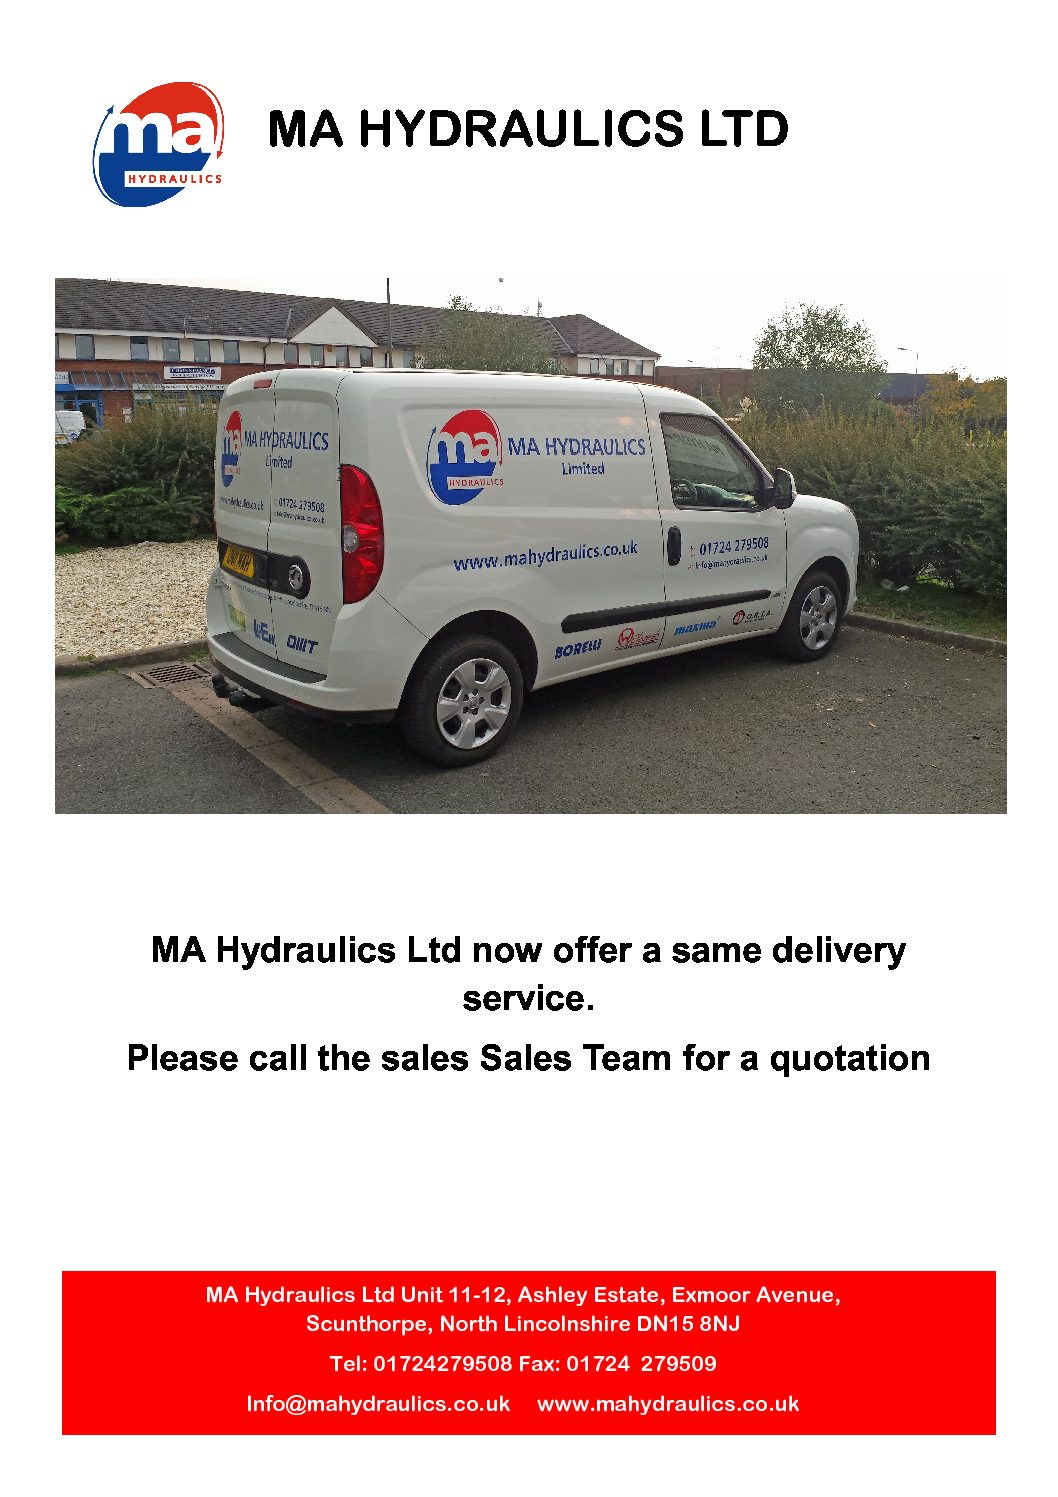 MA Hydraulics Ltd offer a same Day Delivery Service